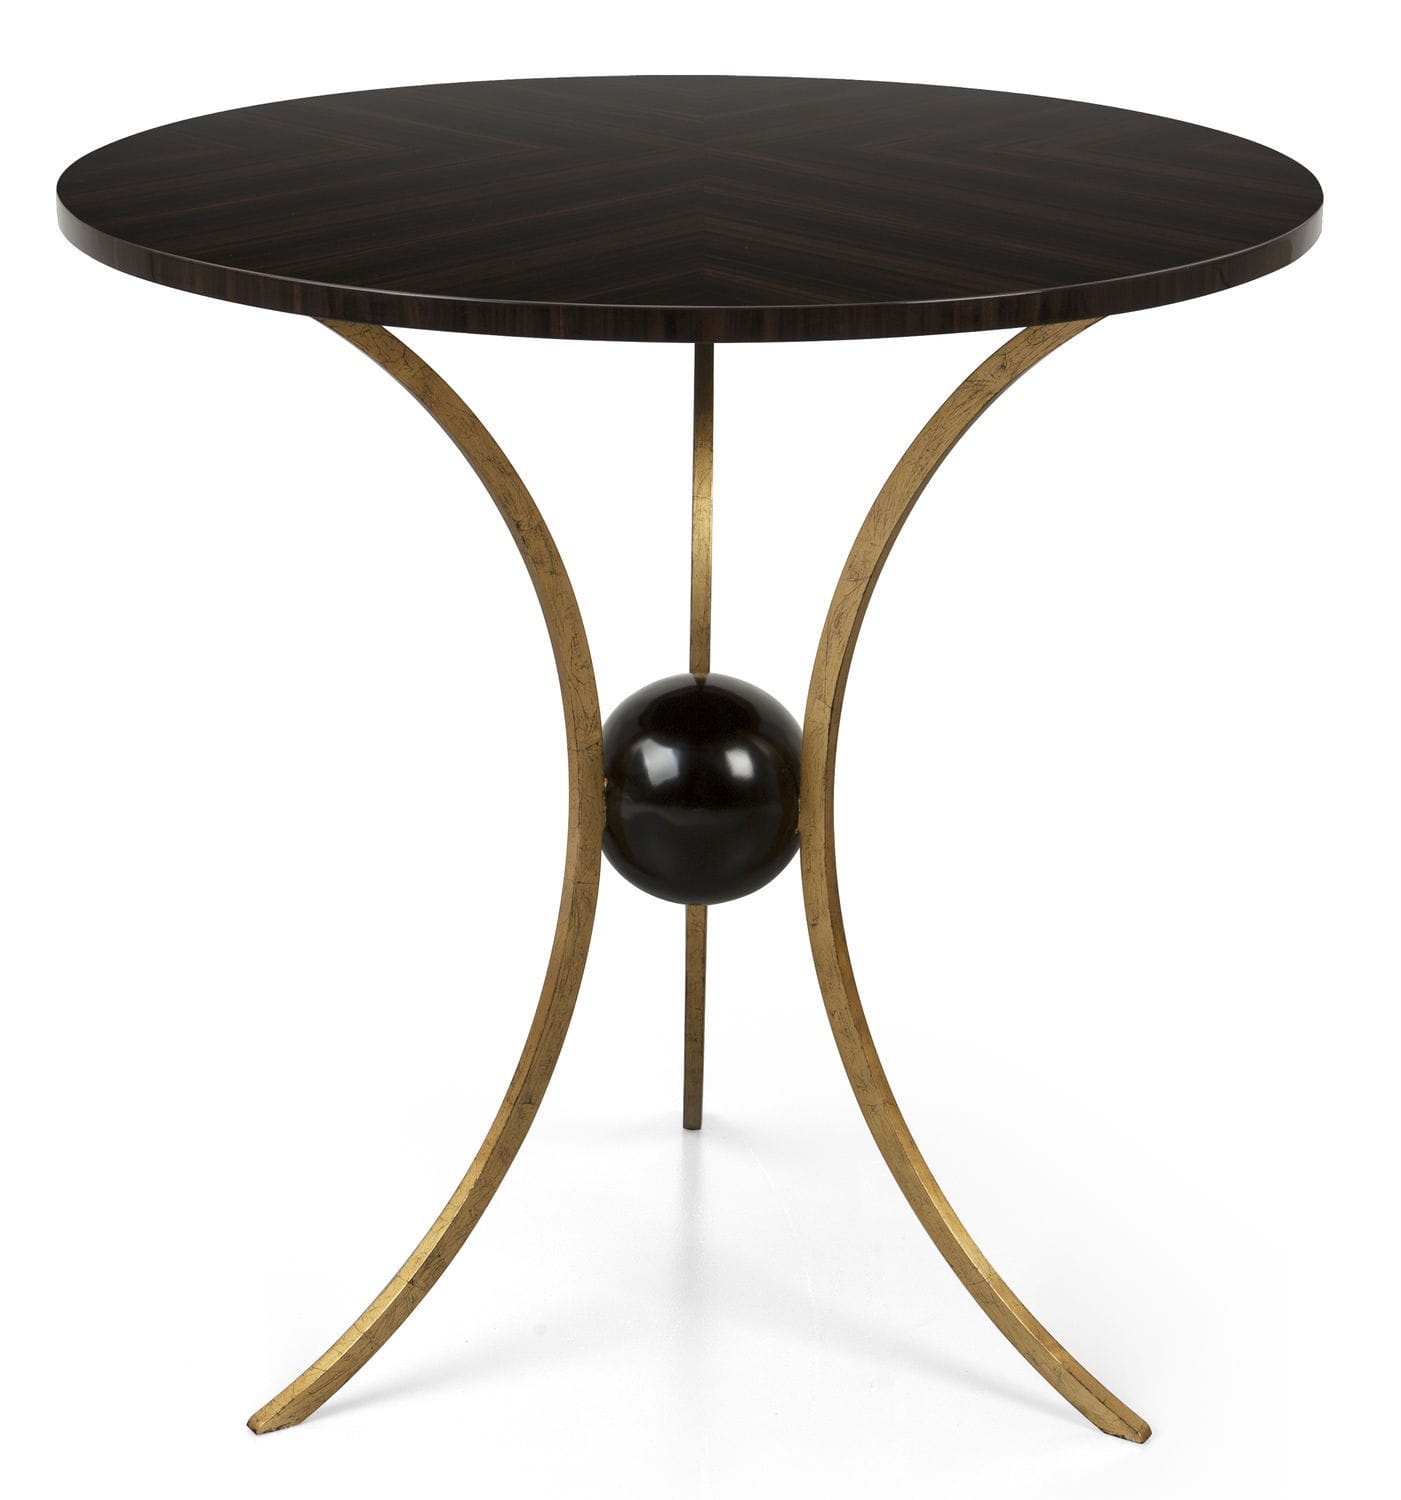 Traditional Pedestal Table / Wooden / Metal / Round   76 0234